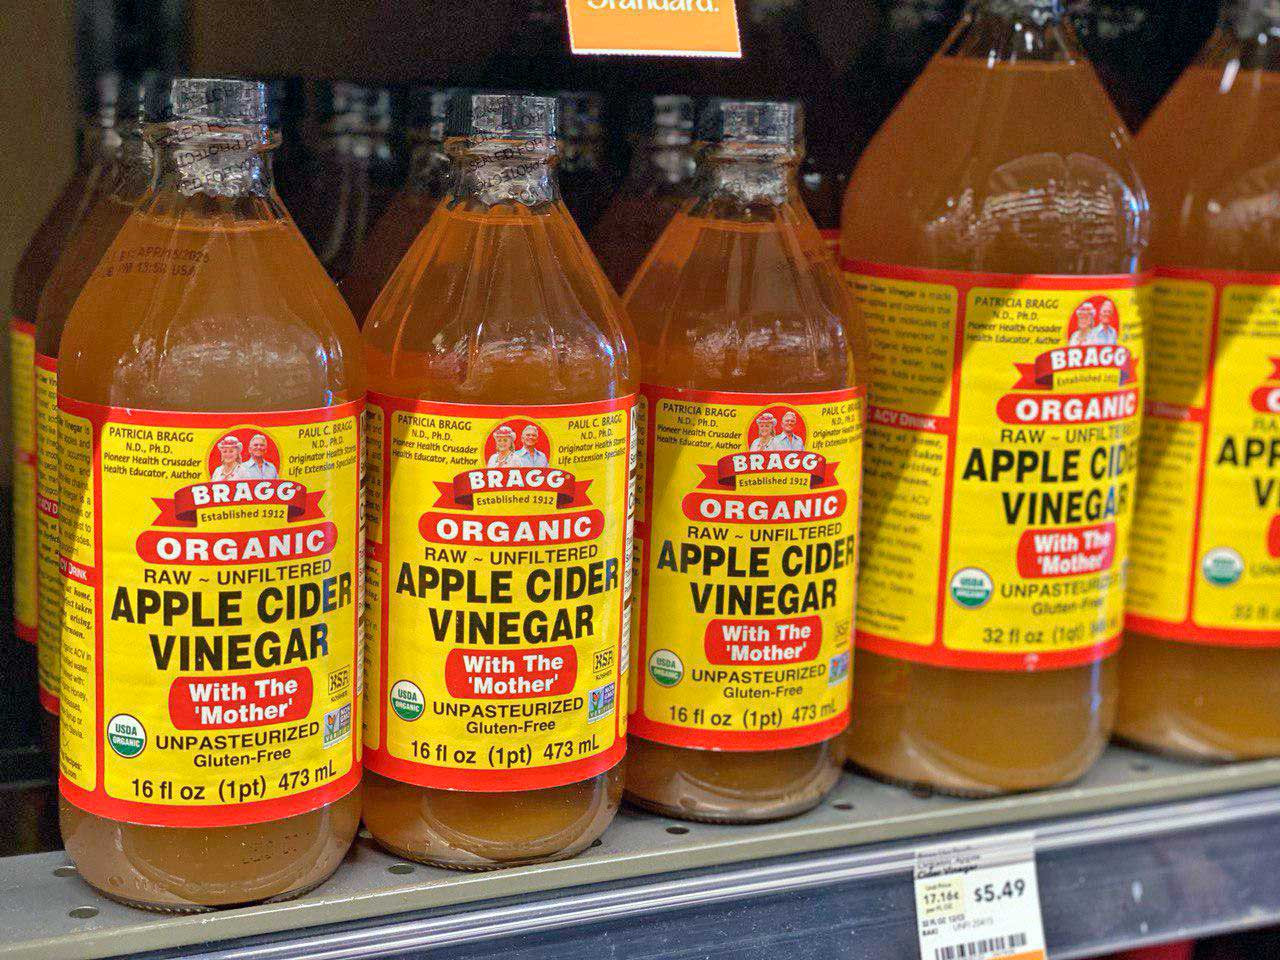 Apple cider vinegar coupons